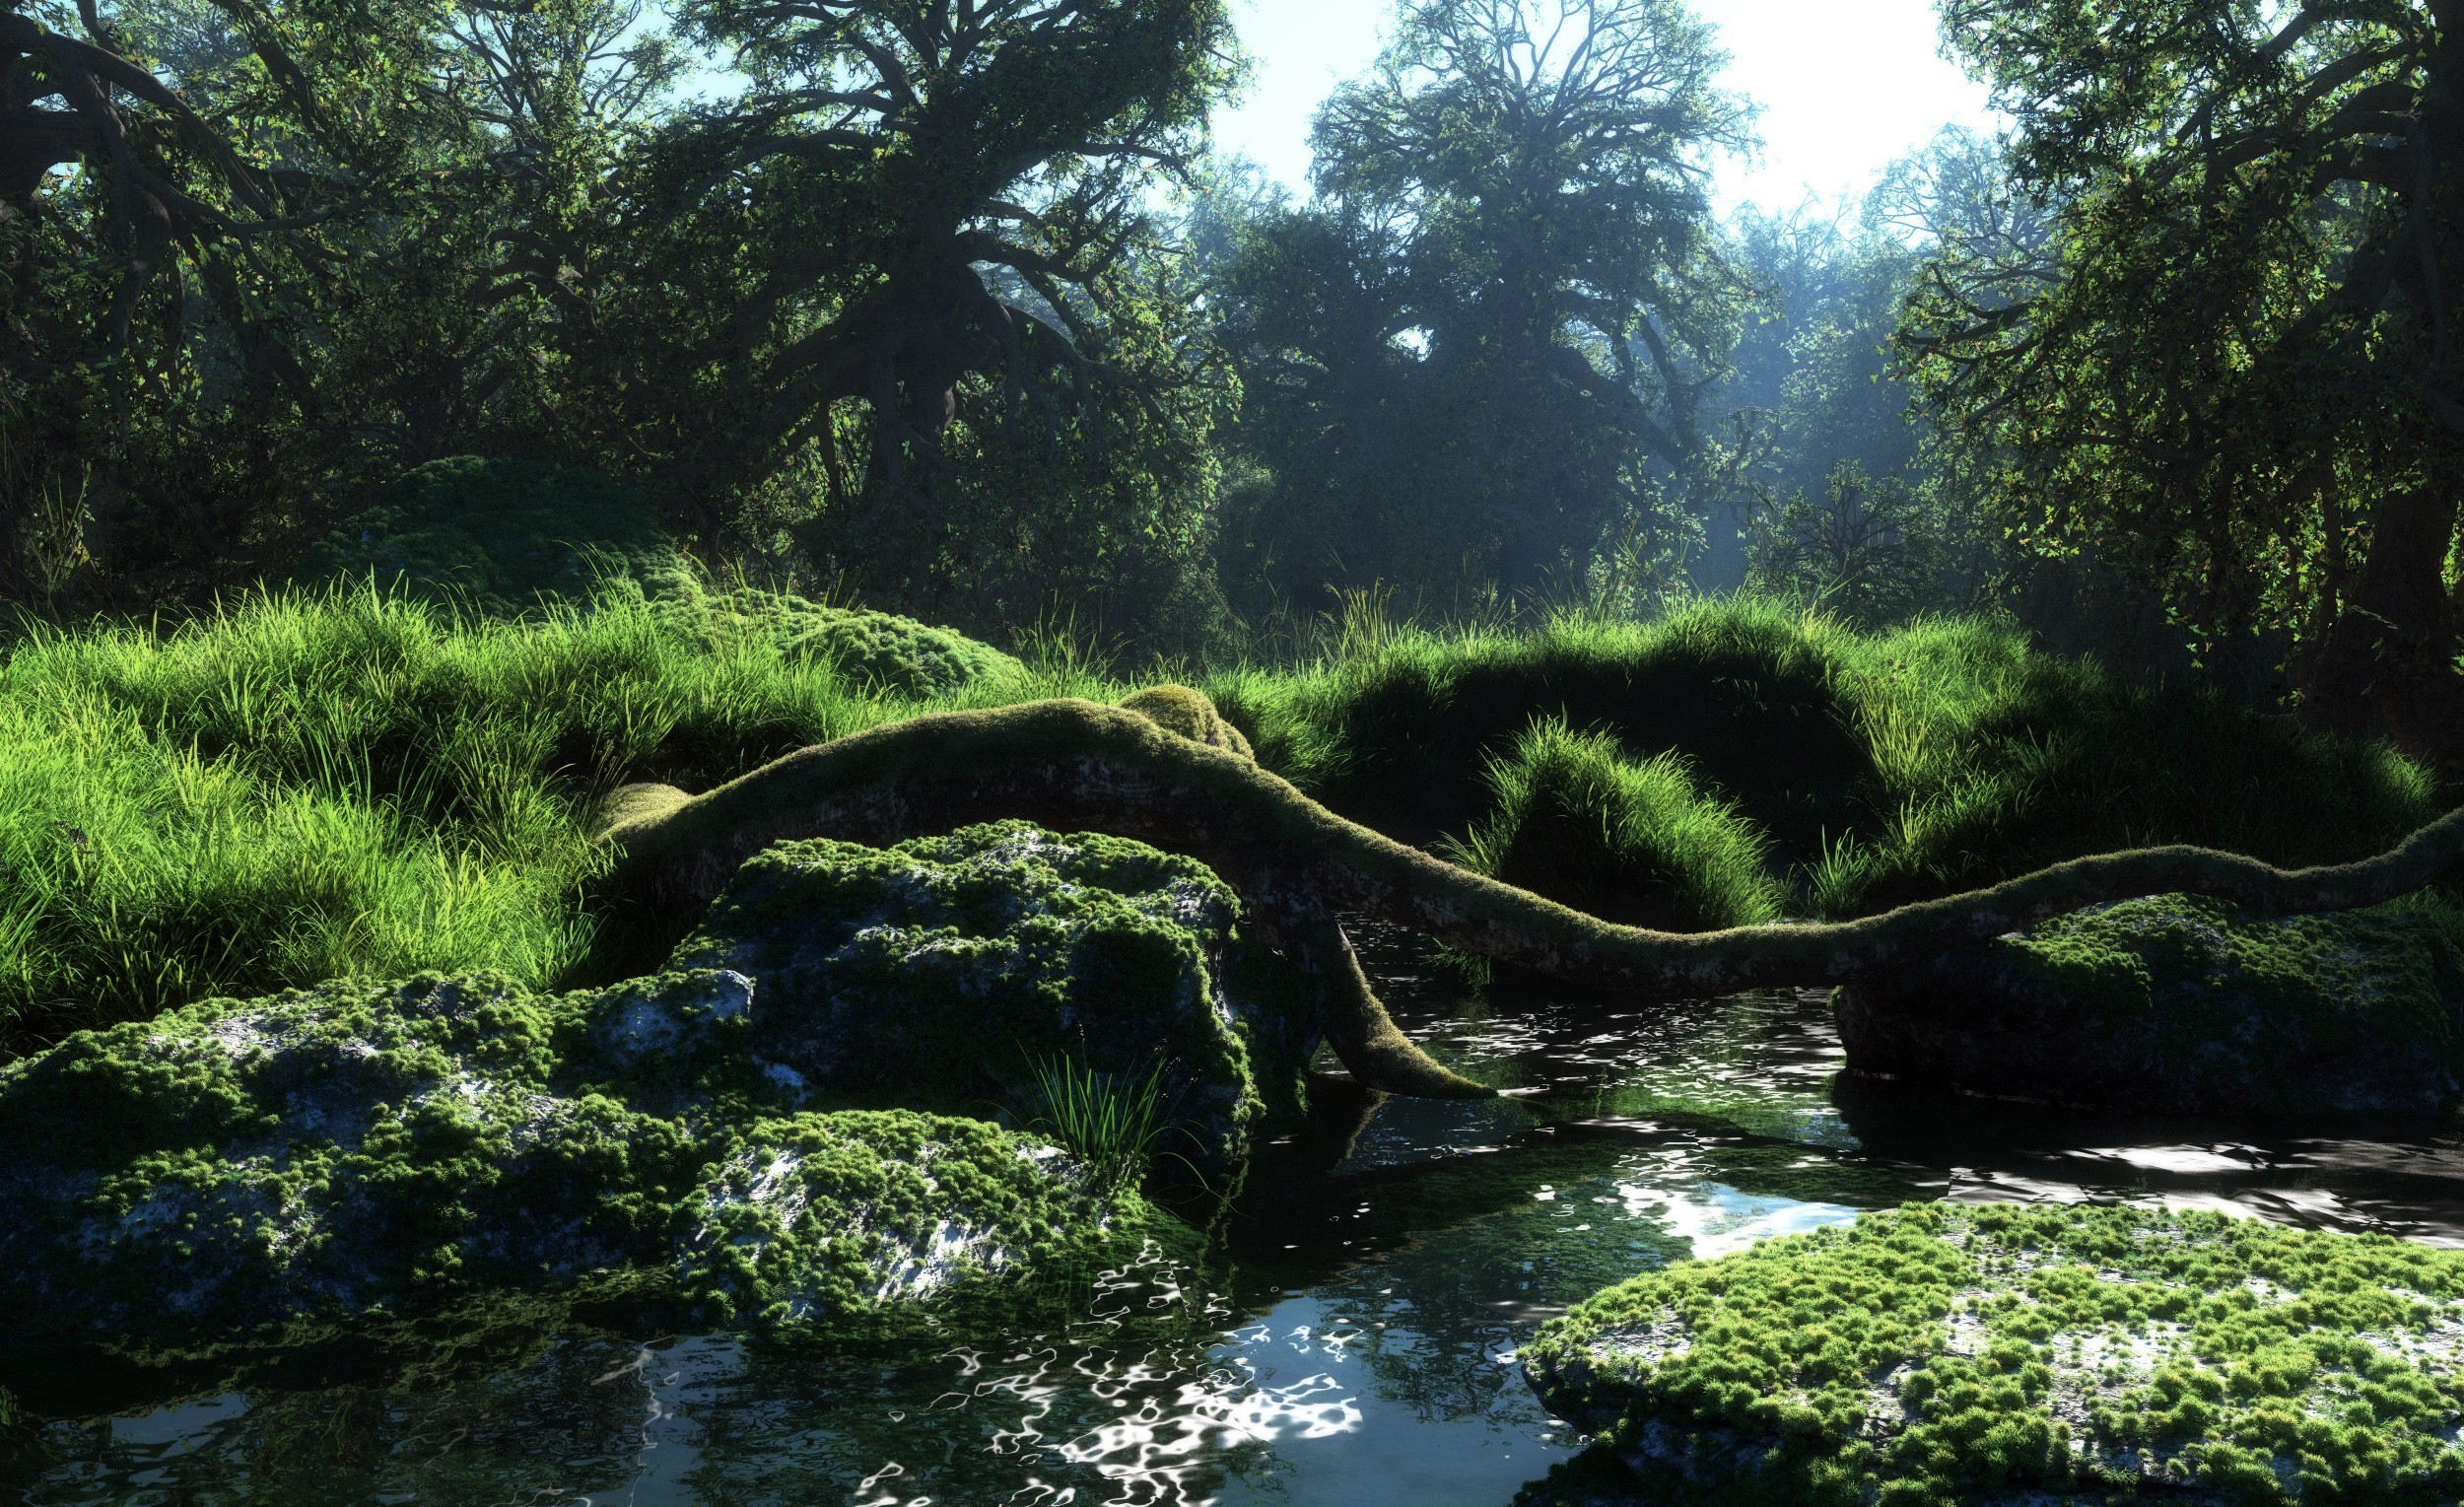 Landscape hd backgrounds pictures images - Cg background hd ...